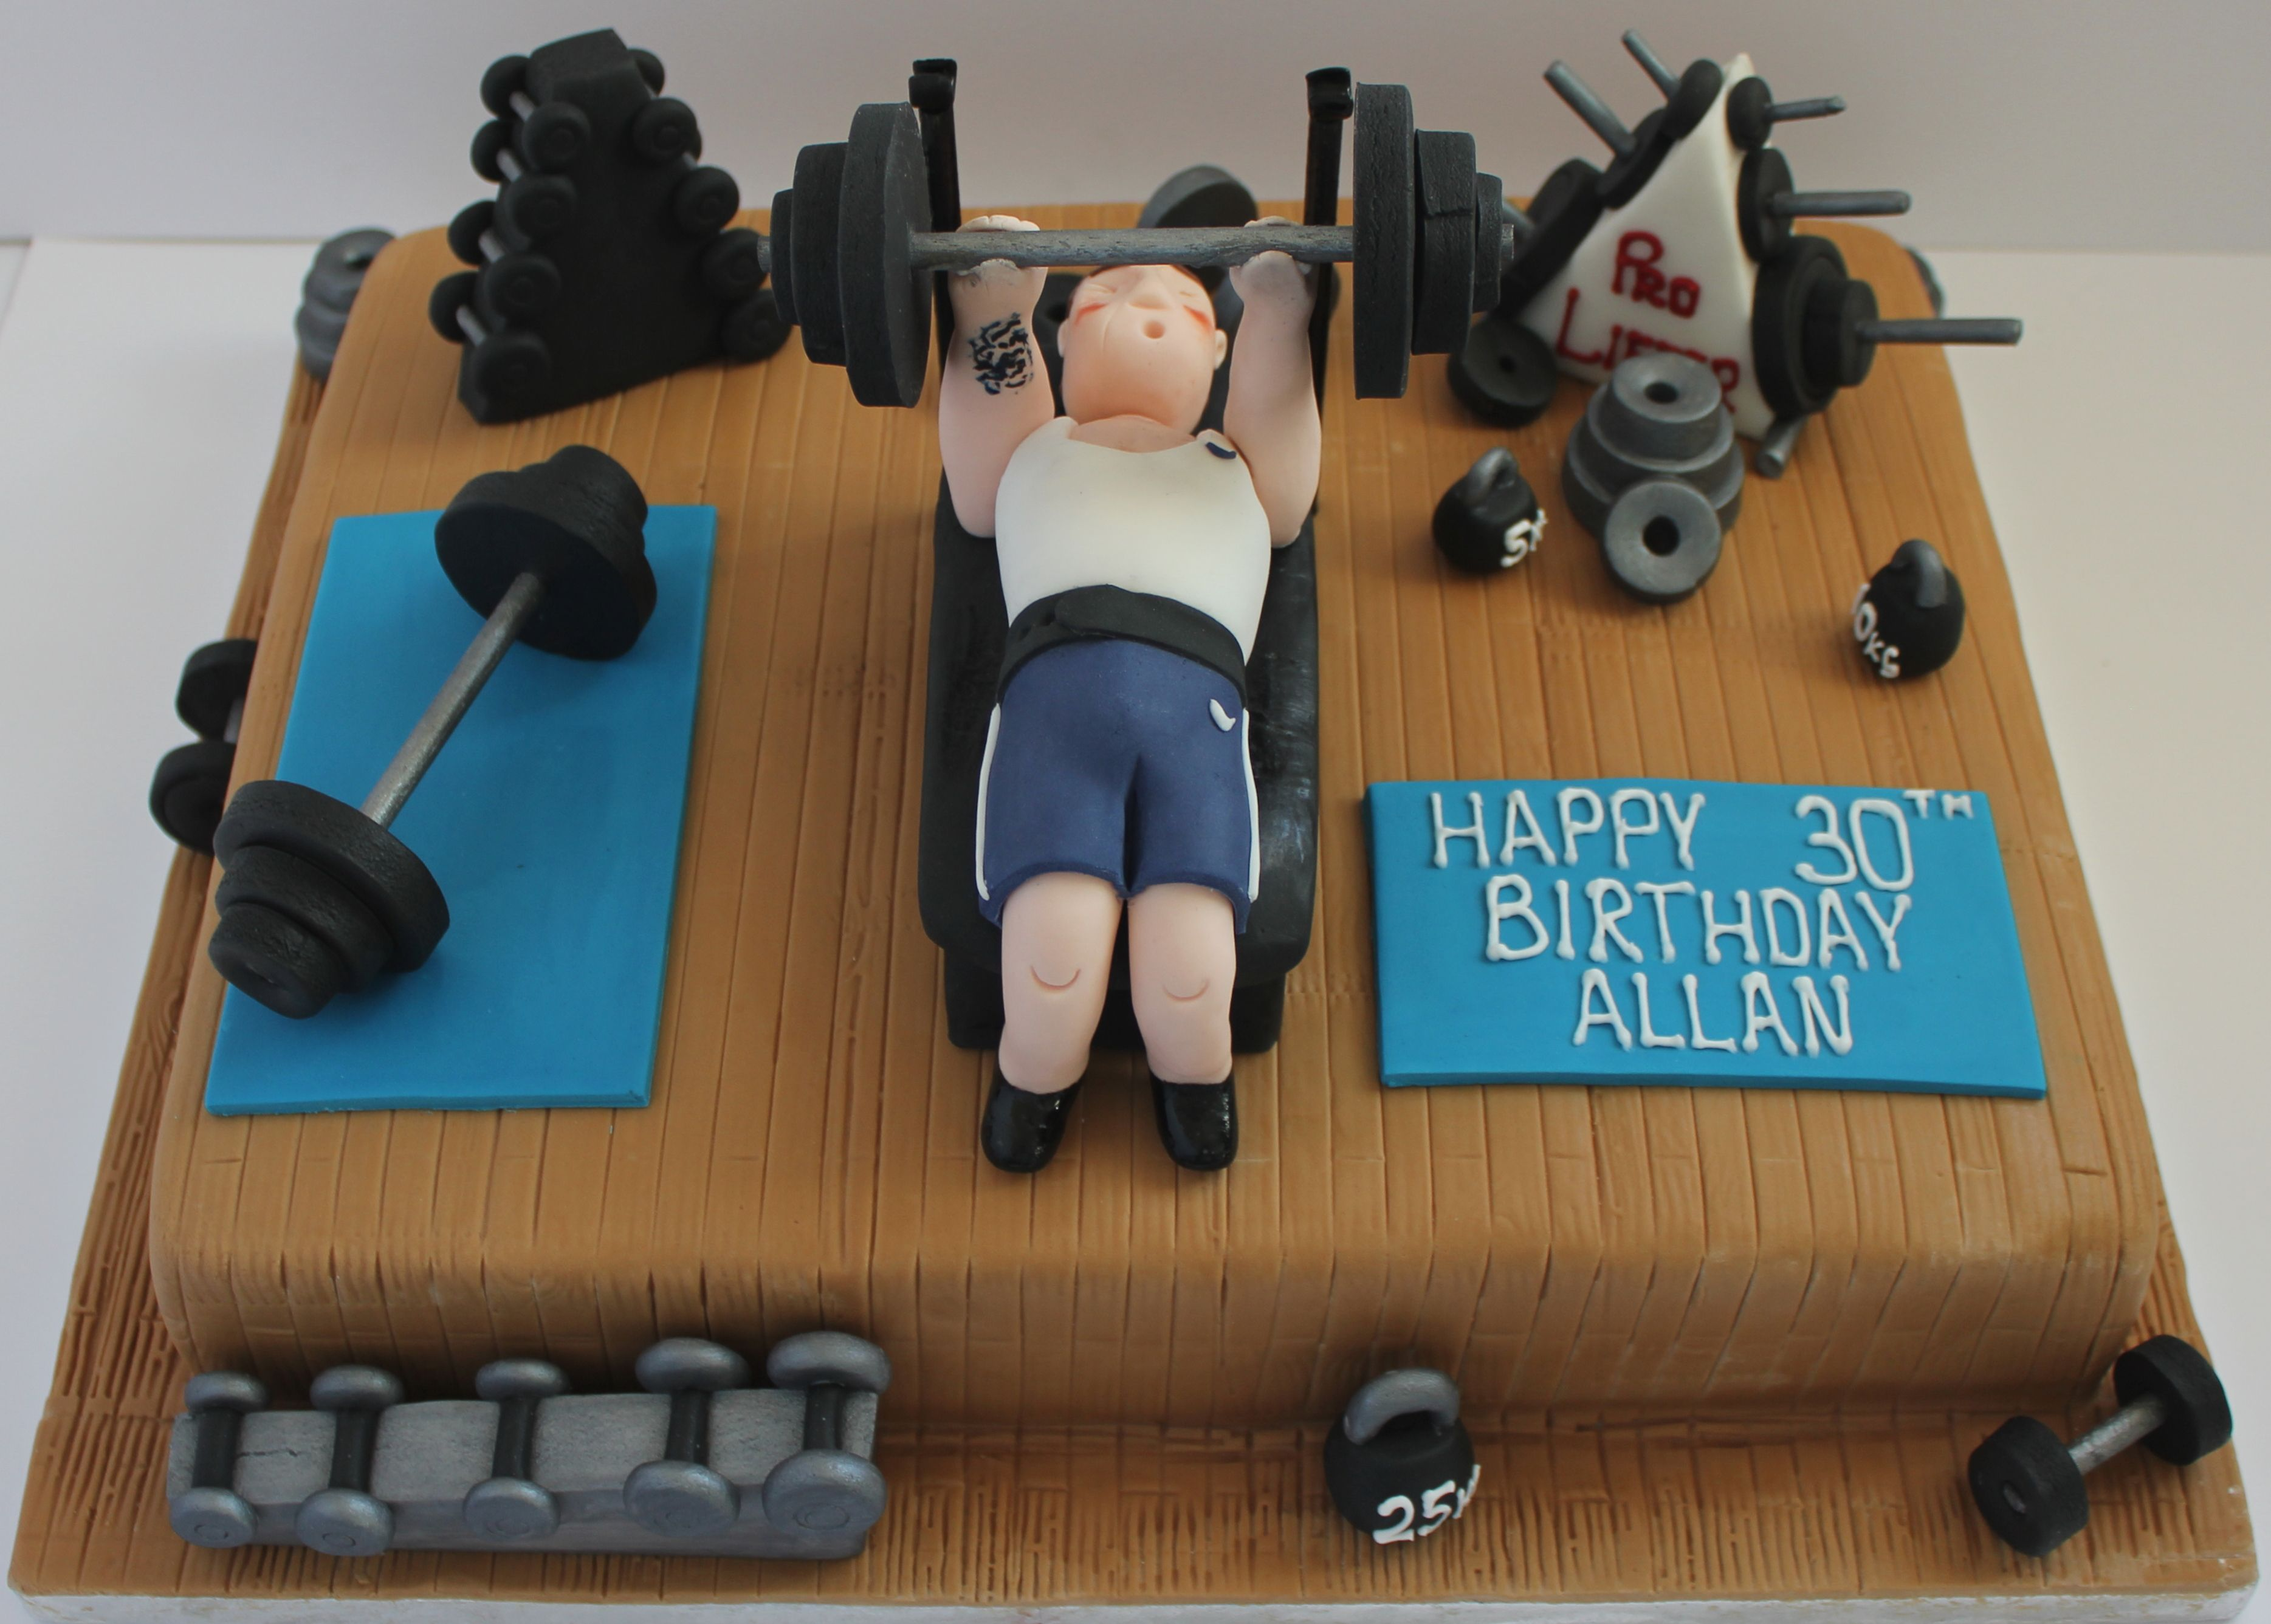 Cake Designs For Gym Lovers : A cake for someone who loves the gym and lifting weights ...